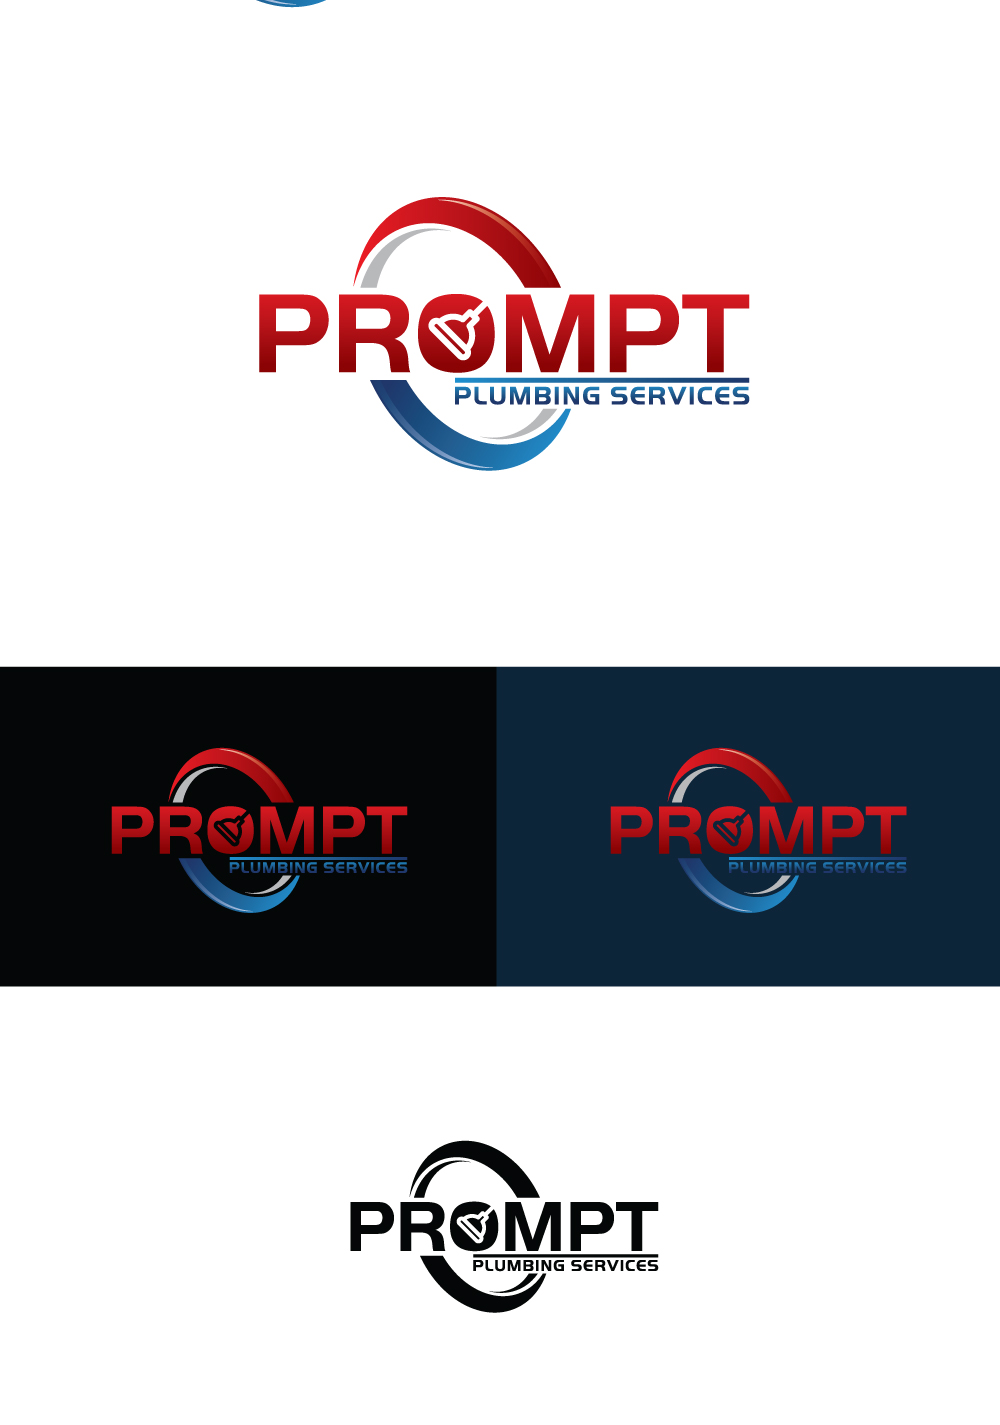 Logo Design by Tauhid Shaikh - Entry No. 17 in the Logo Design Contest Artistic Logo Design for Prompt Plumbing Services.